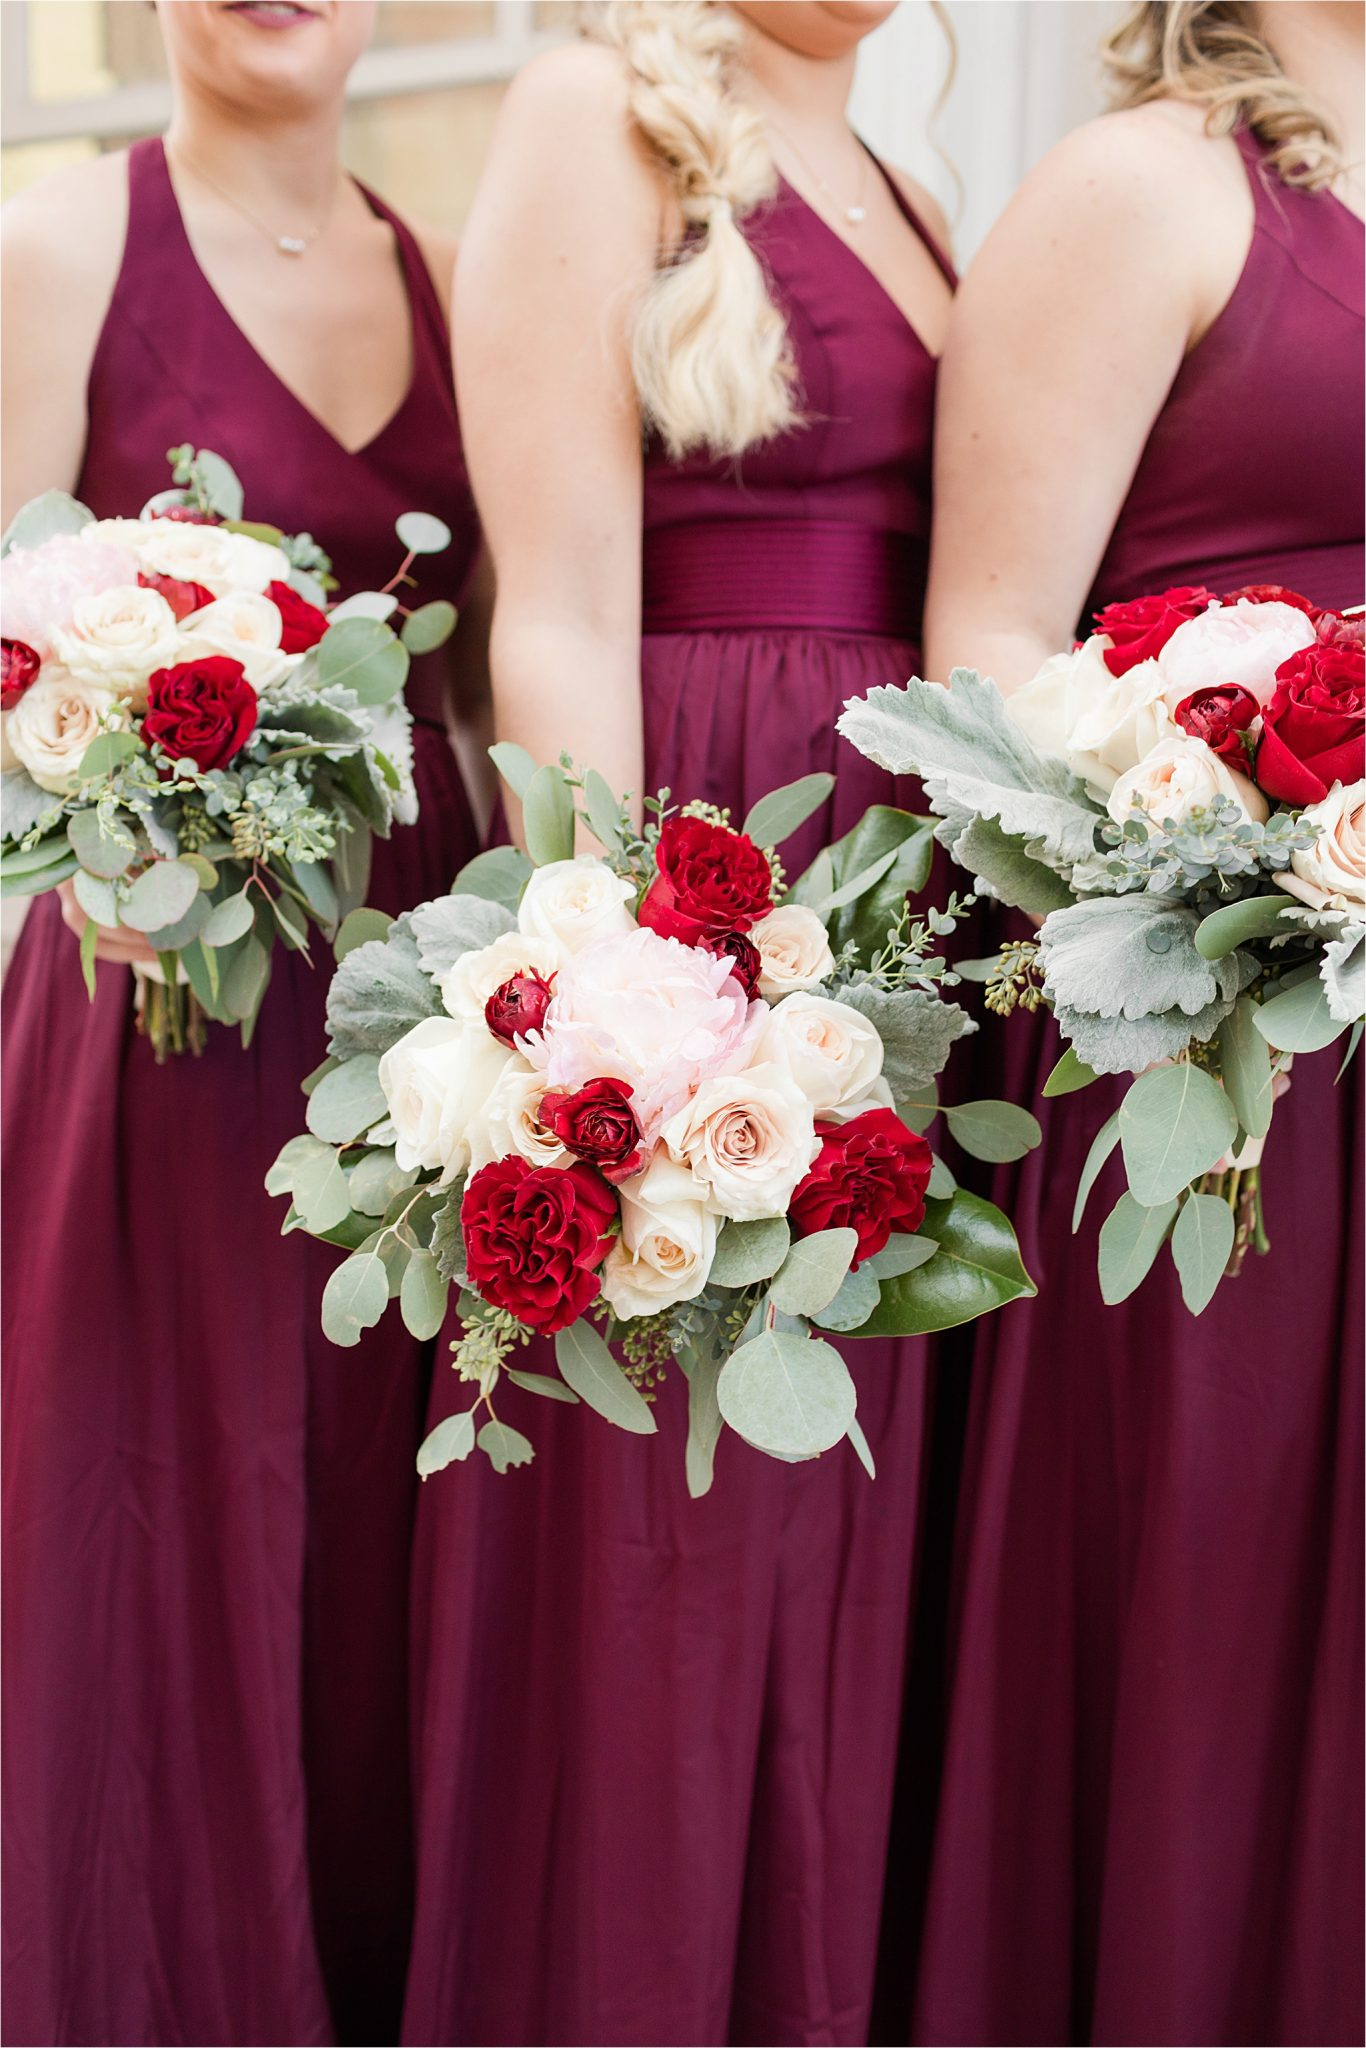 bridesmaids-deep-magenta-plum-dresses-red-white-roses-christmas-wedding-alabama